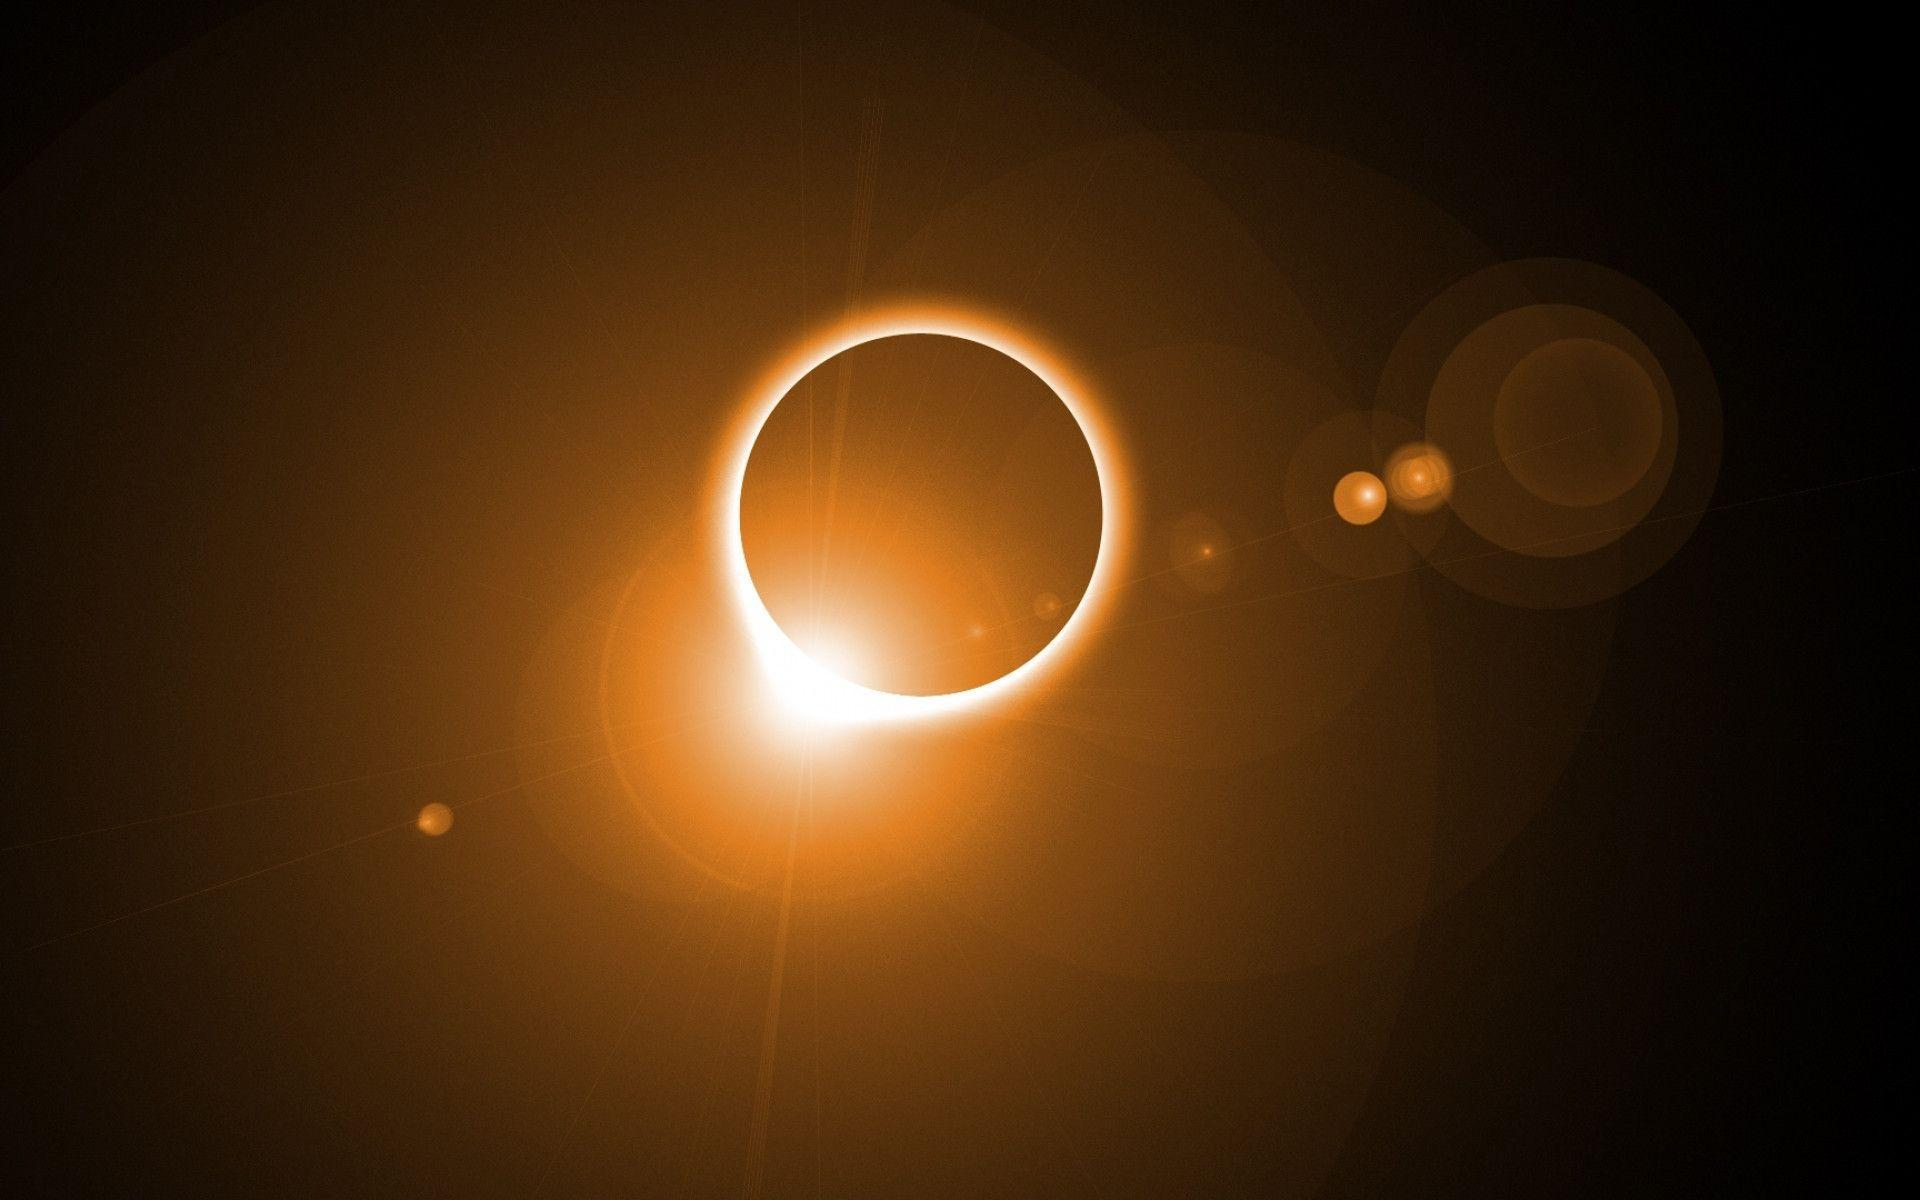 Eclipse Hd Wallpaper Solar Eclipse Wallpapers Wallpaper Cave